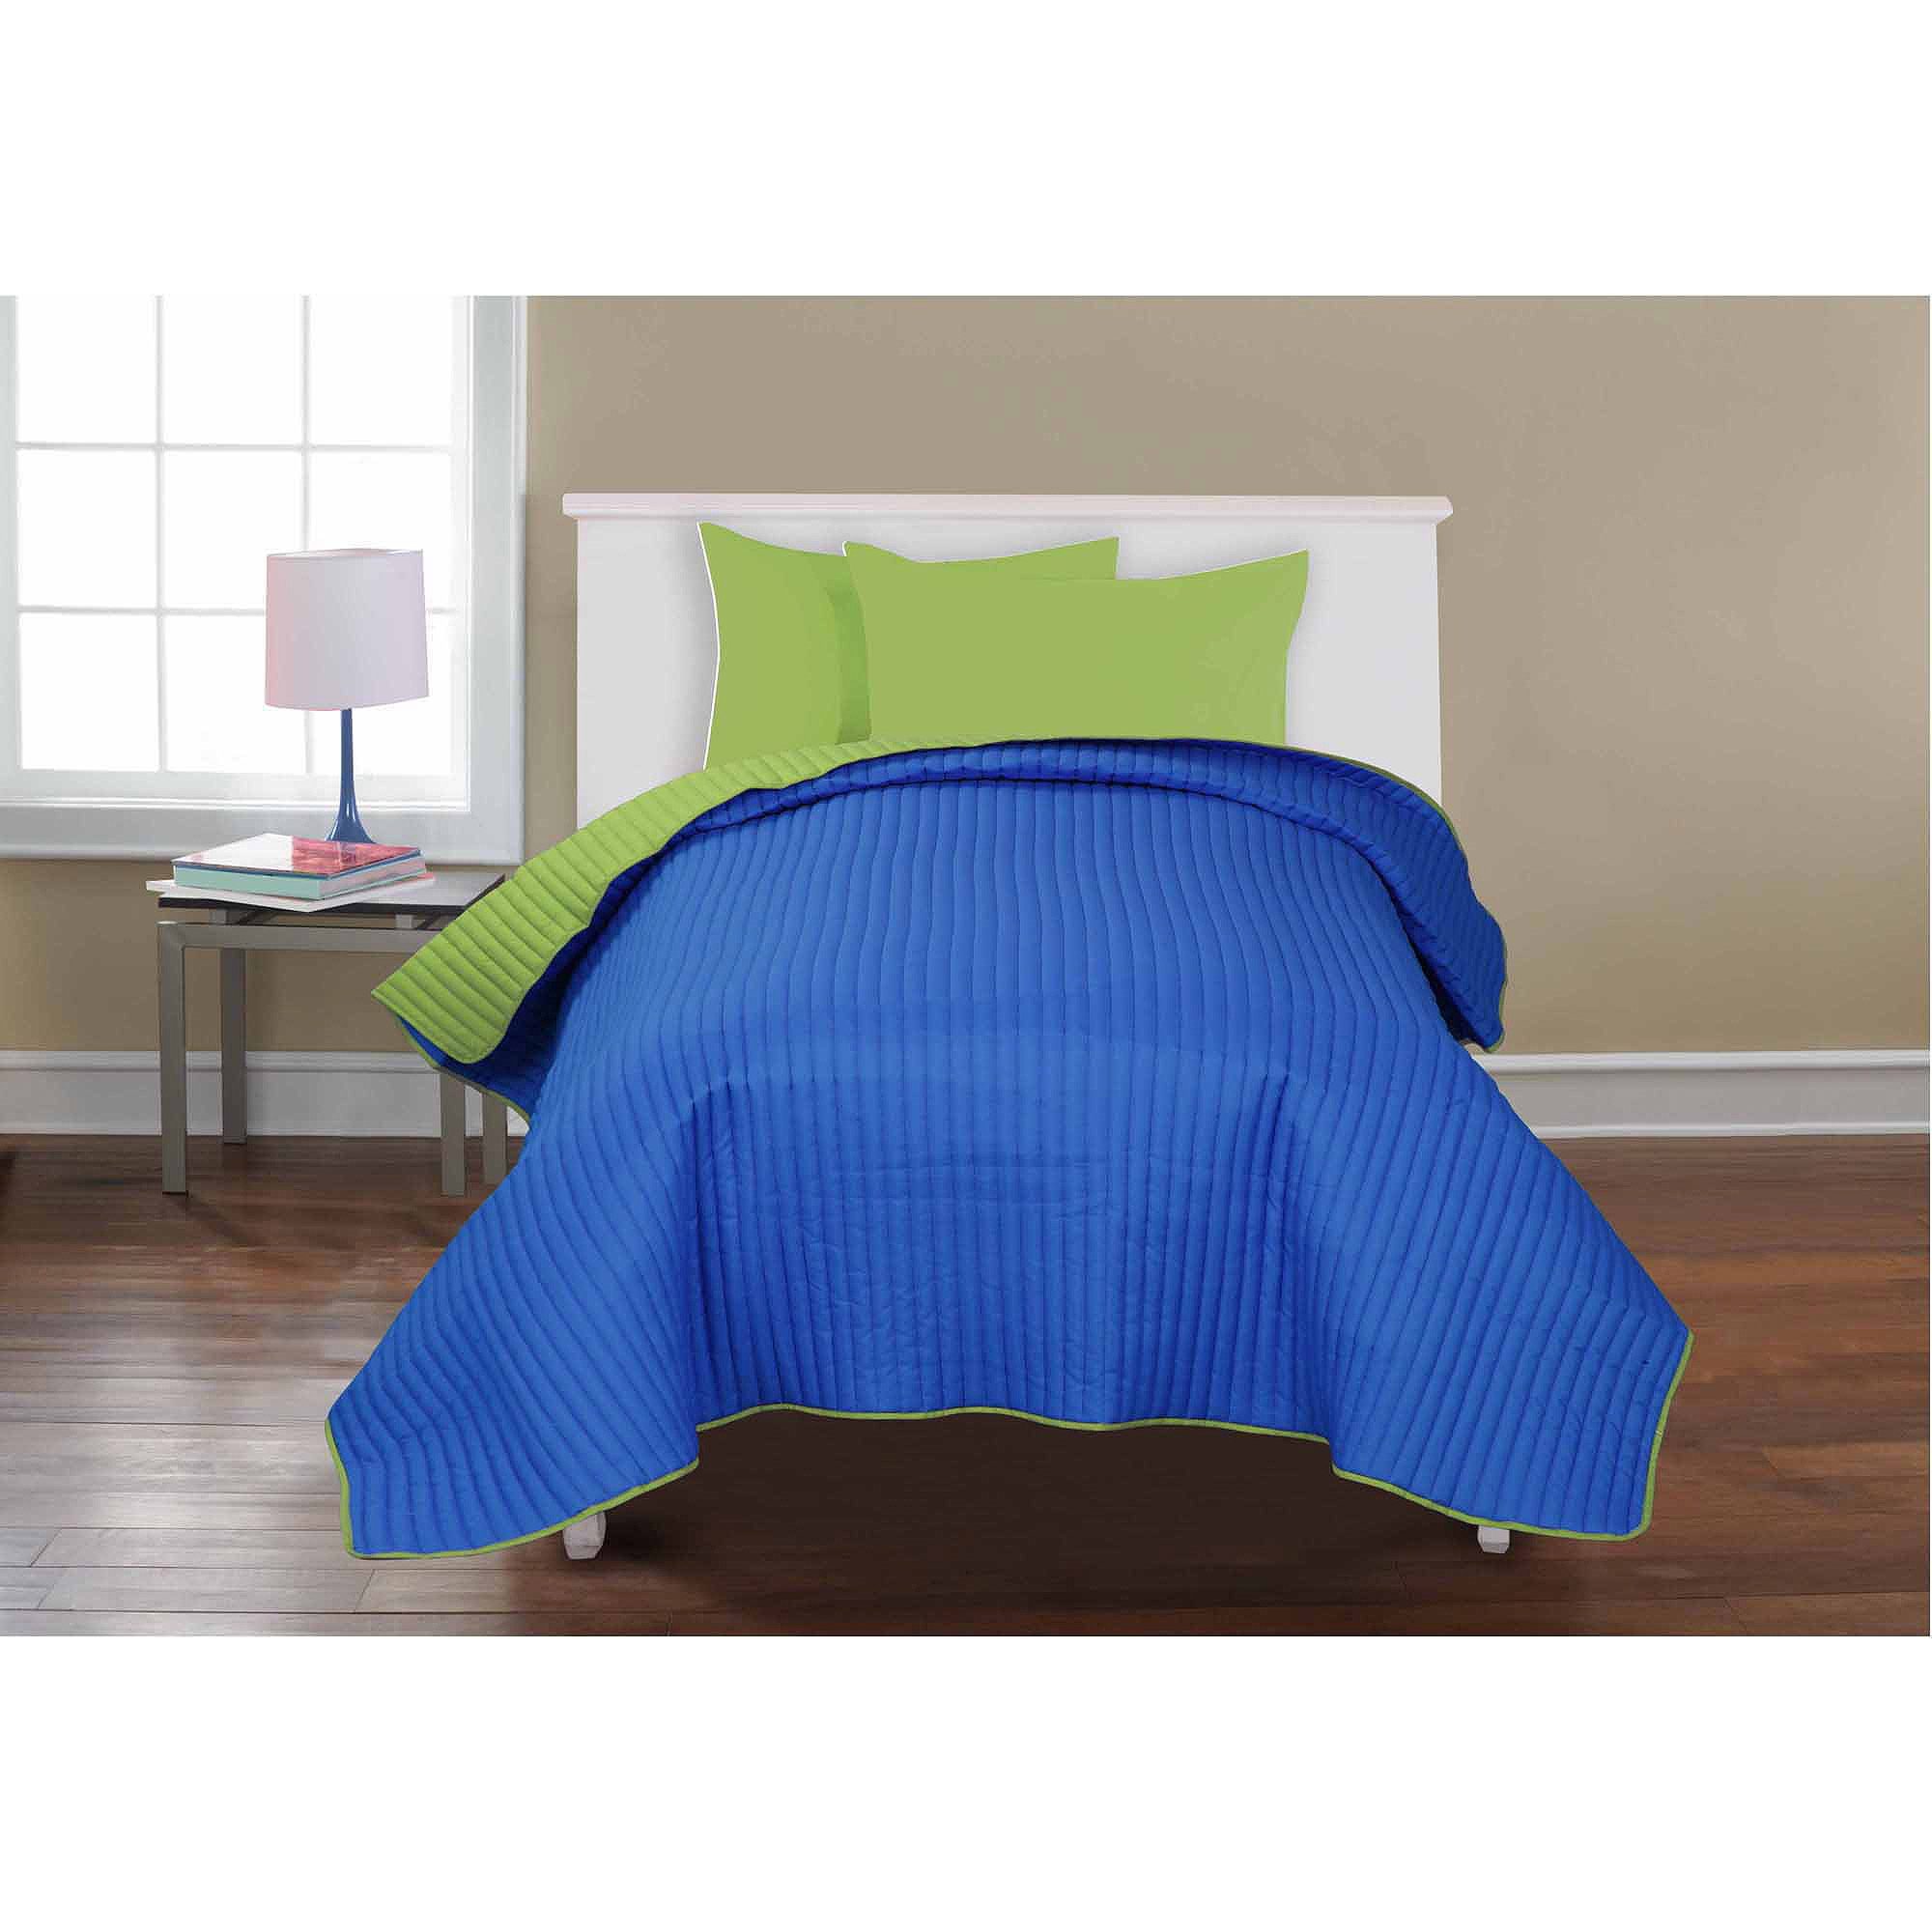 Mainstays Kids' Reversible Quilt, Blue & Lime